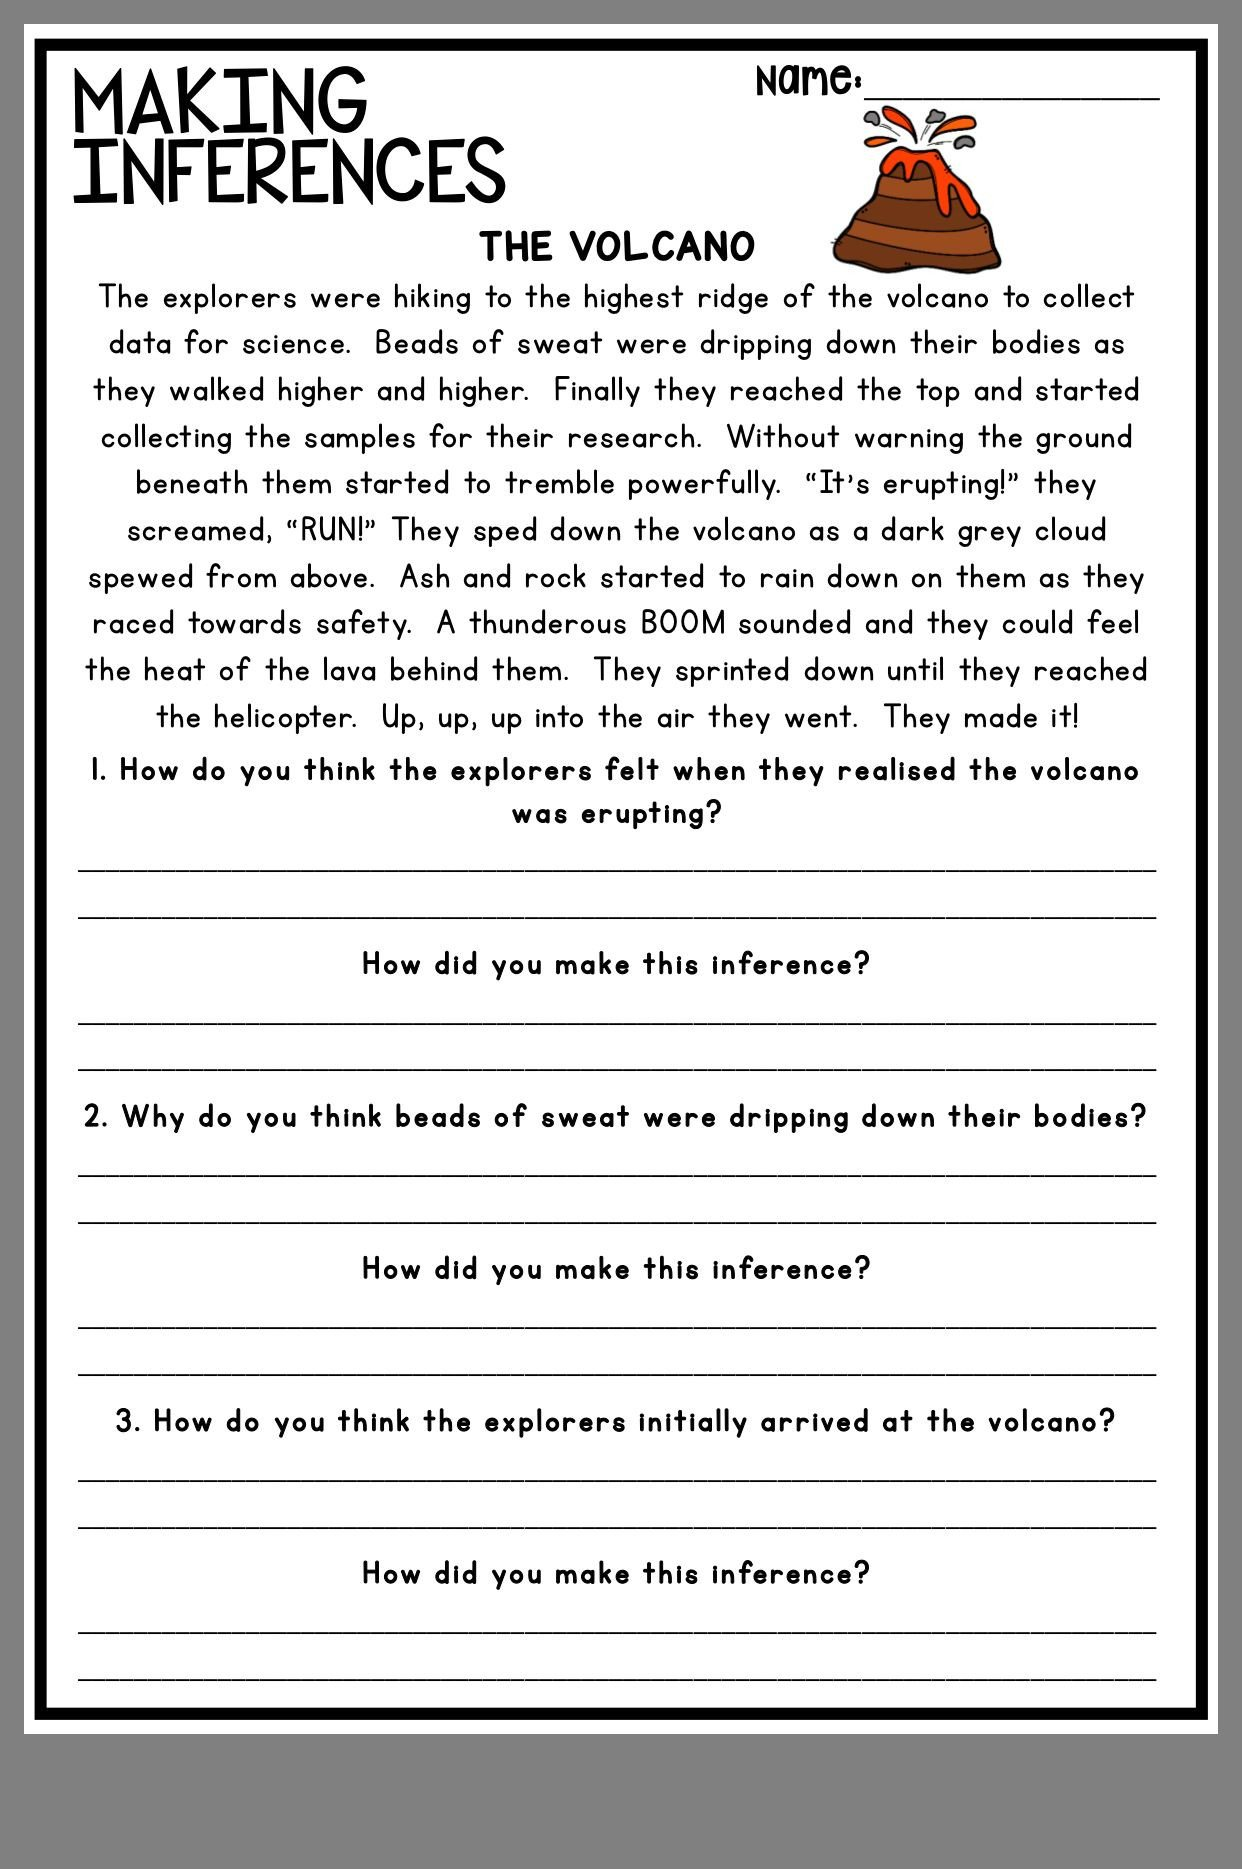 Inferencing Worksheets 4th Grade Pin by Audrey C On A Teacher S Best Ideas